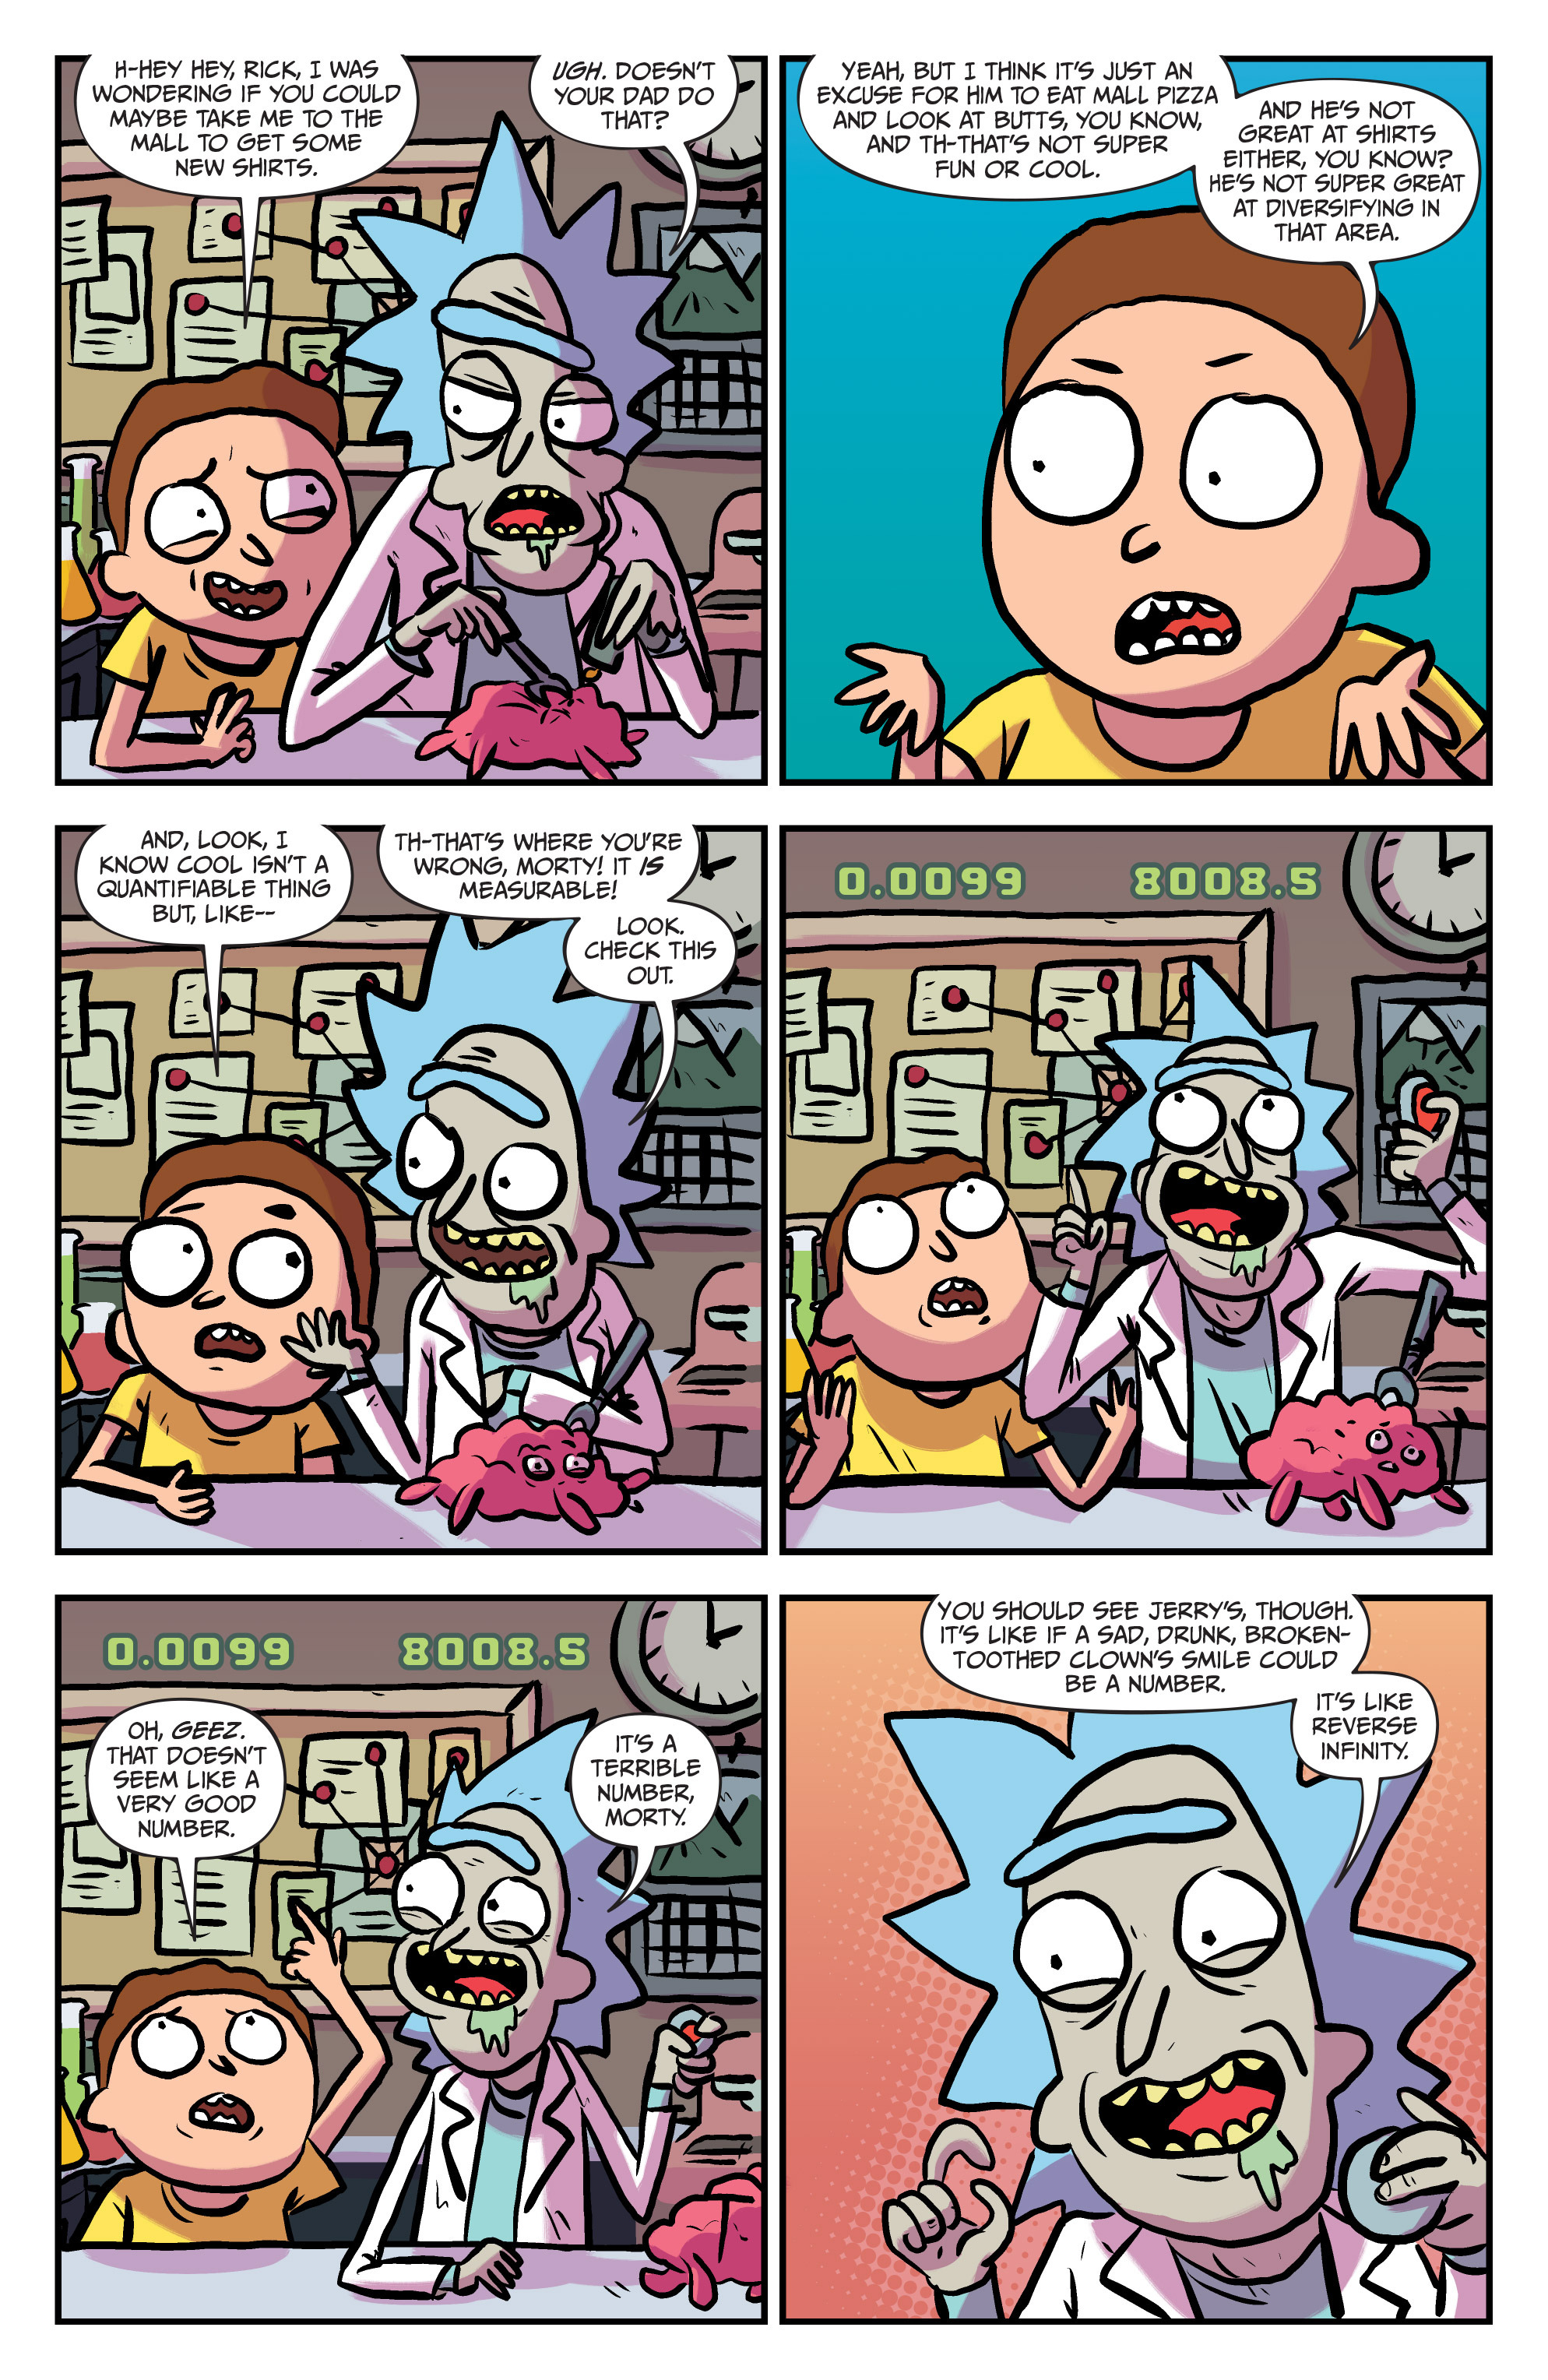 Read online Rick and Morty comic -  Issue #25 - 3